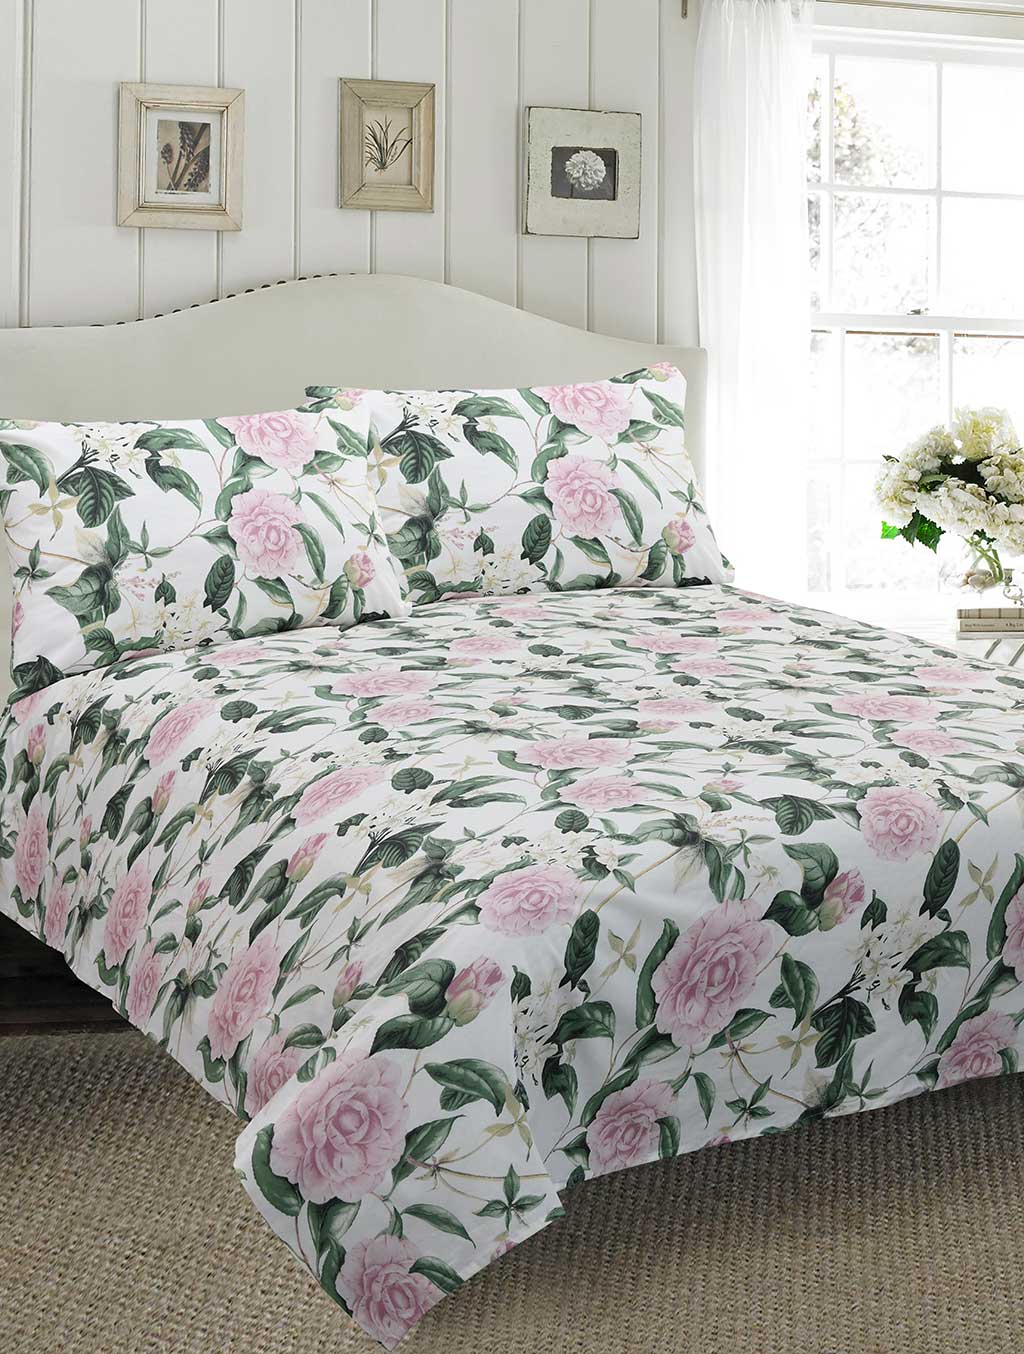 BED SHEET R2G 17472 Printed Range 144 TC HOMBEDROO